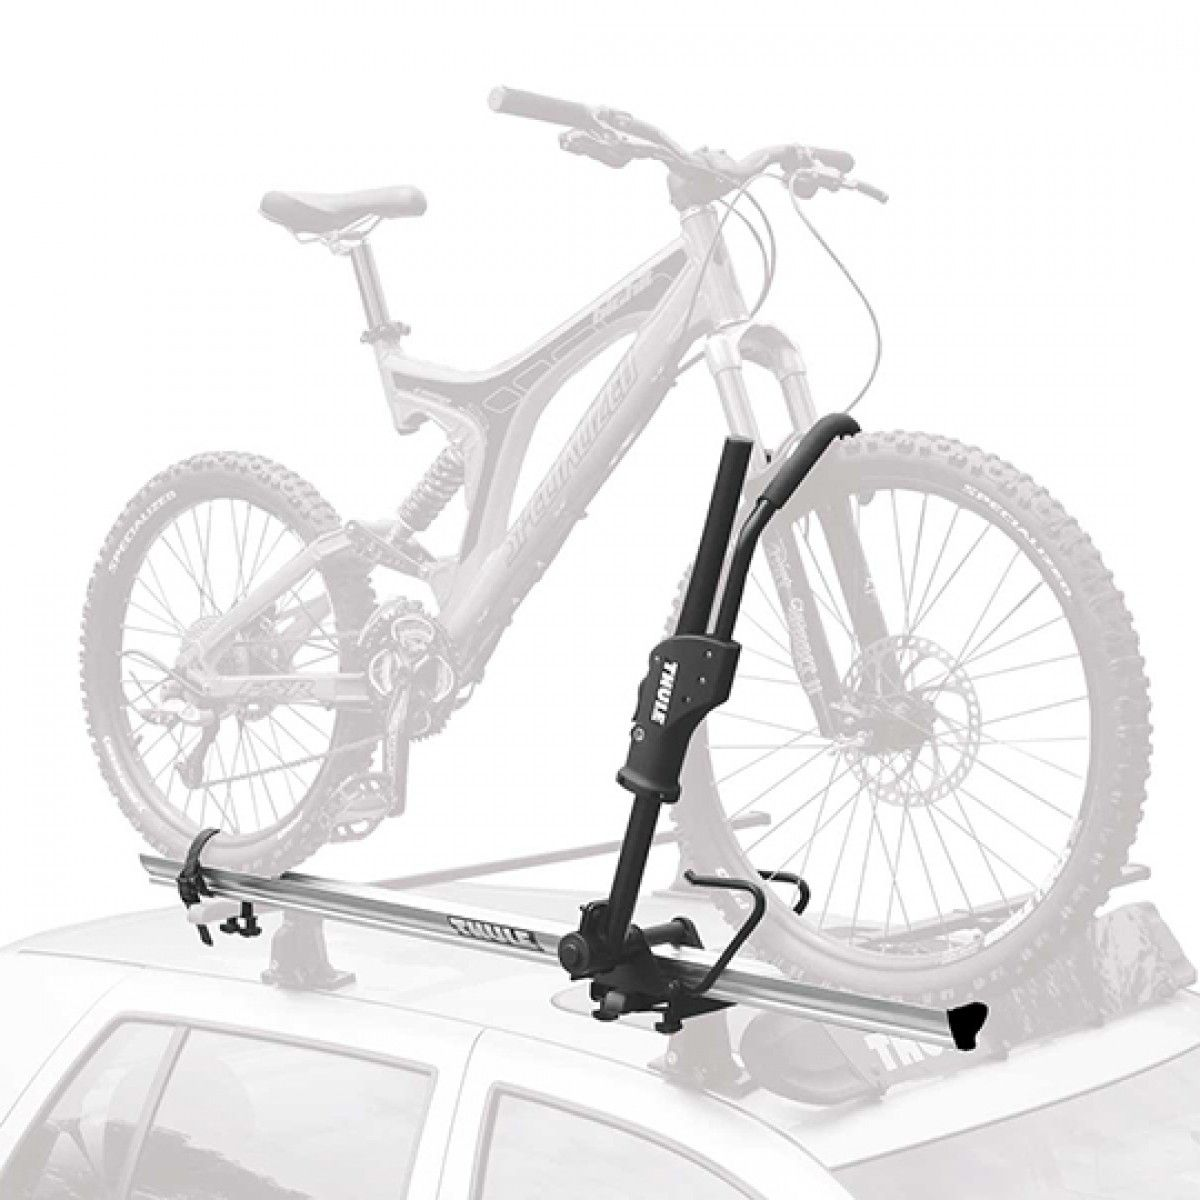 installation carrier roof reviews instructions for rack bike thule sale ro adapter parts fat